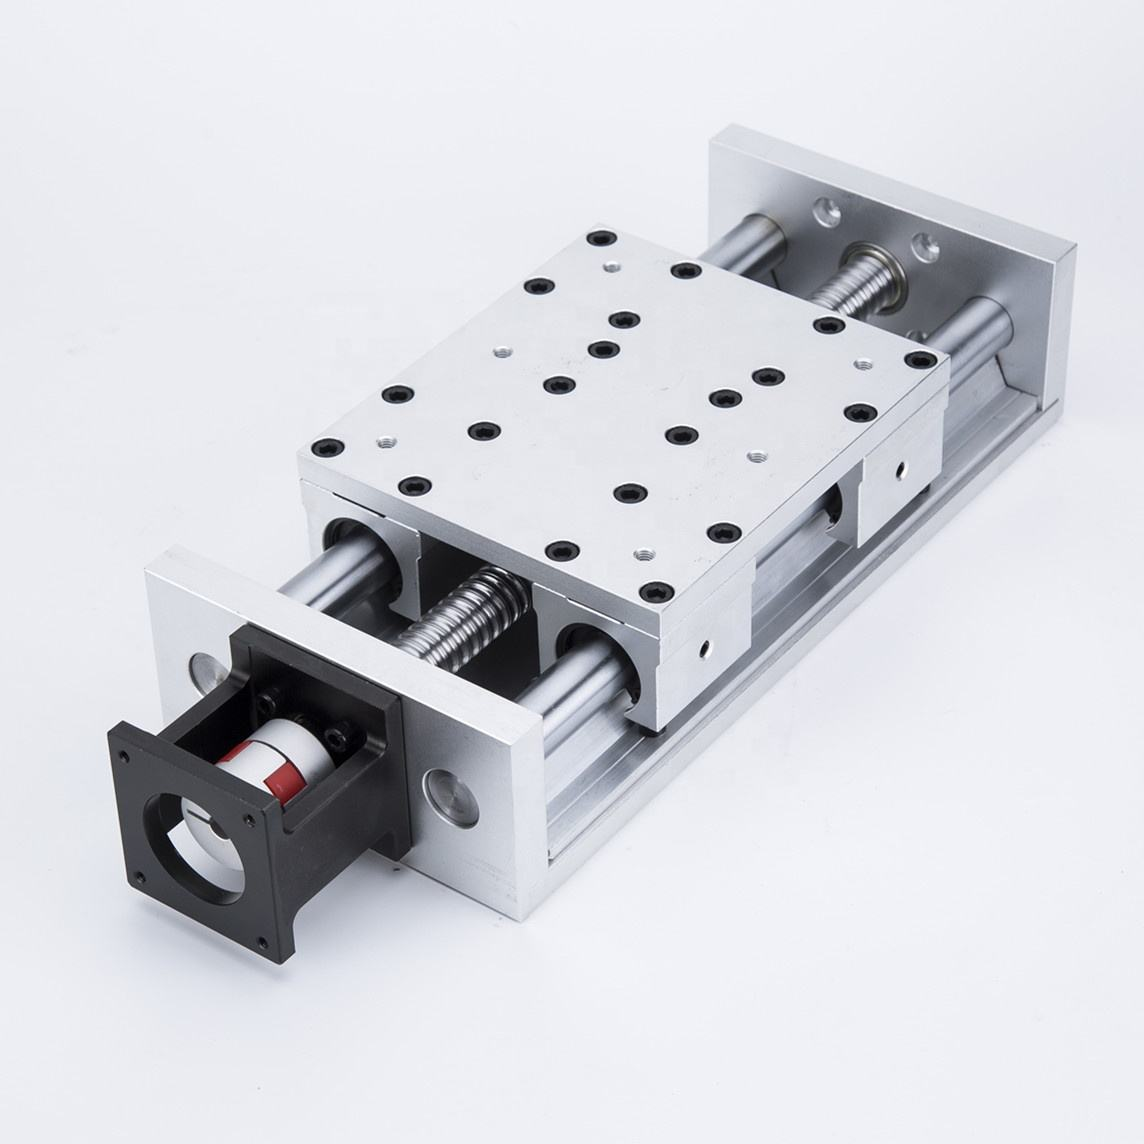 Hot sale New product Load capacity 150kg 2 linear guide rail+4 slide blocks+1 ball screw motorized linear slide stage XBR140GS